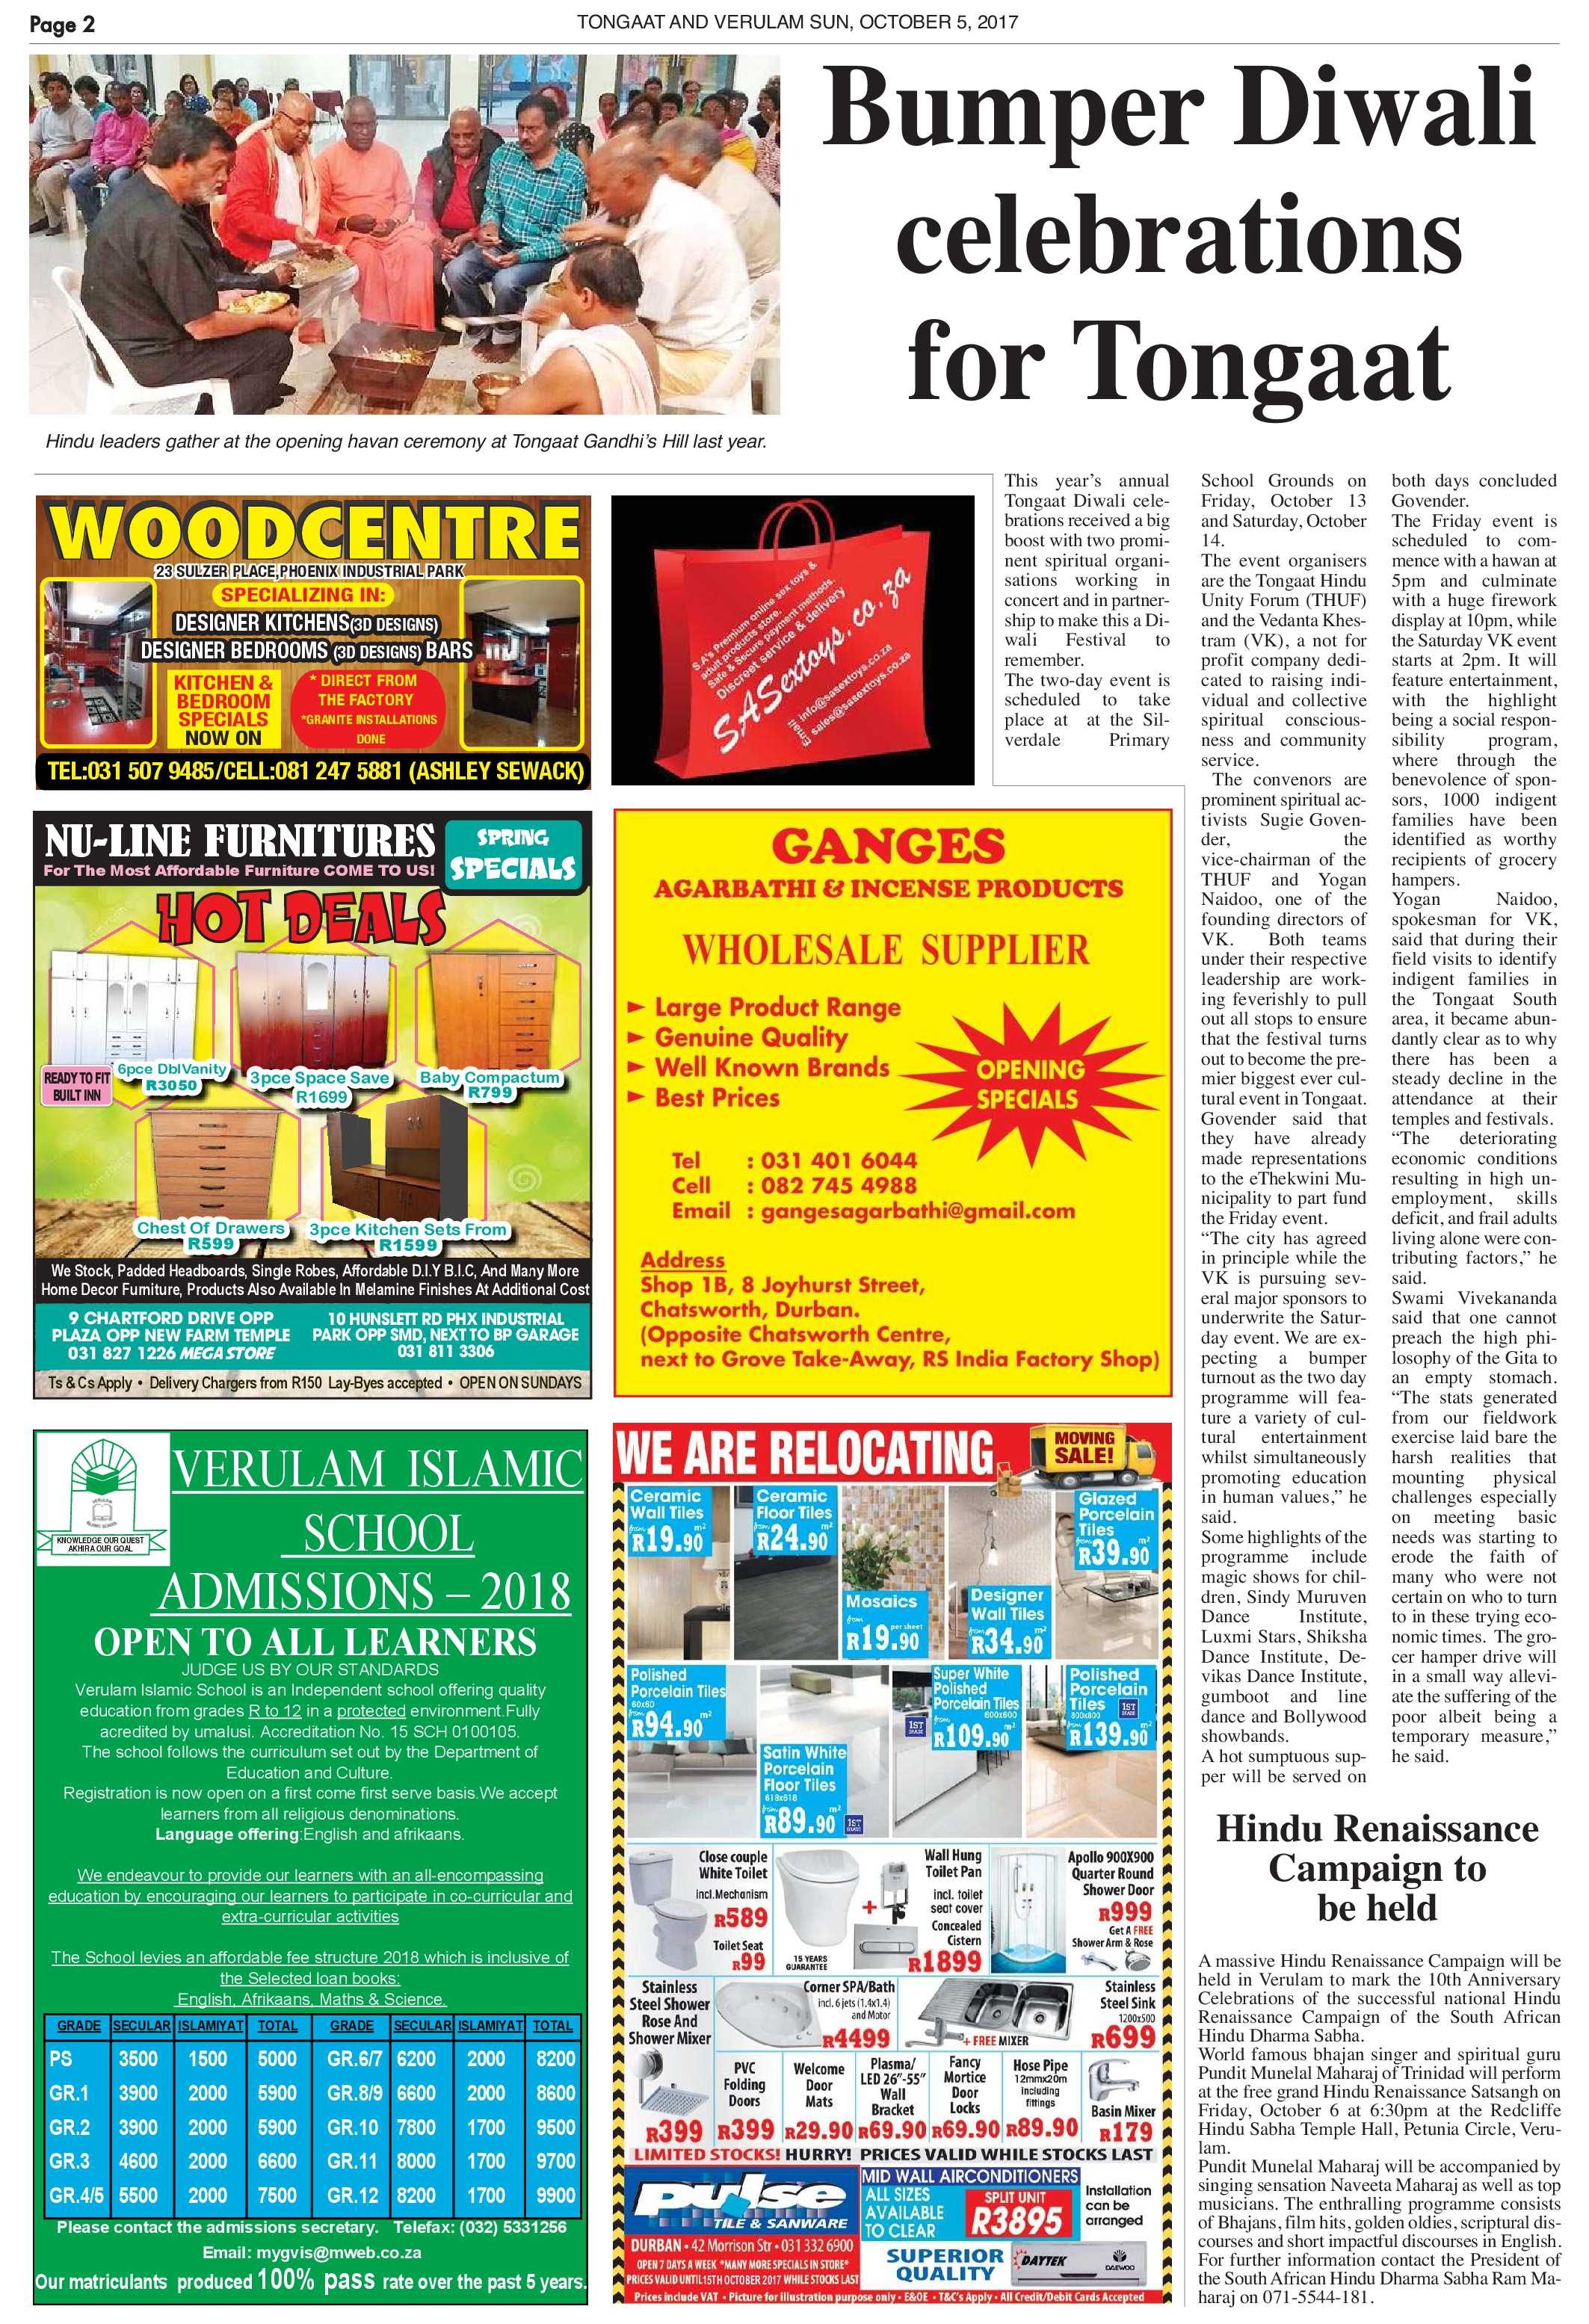 tongaat-verulam-sun-october-5-epapers-page-2